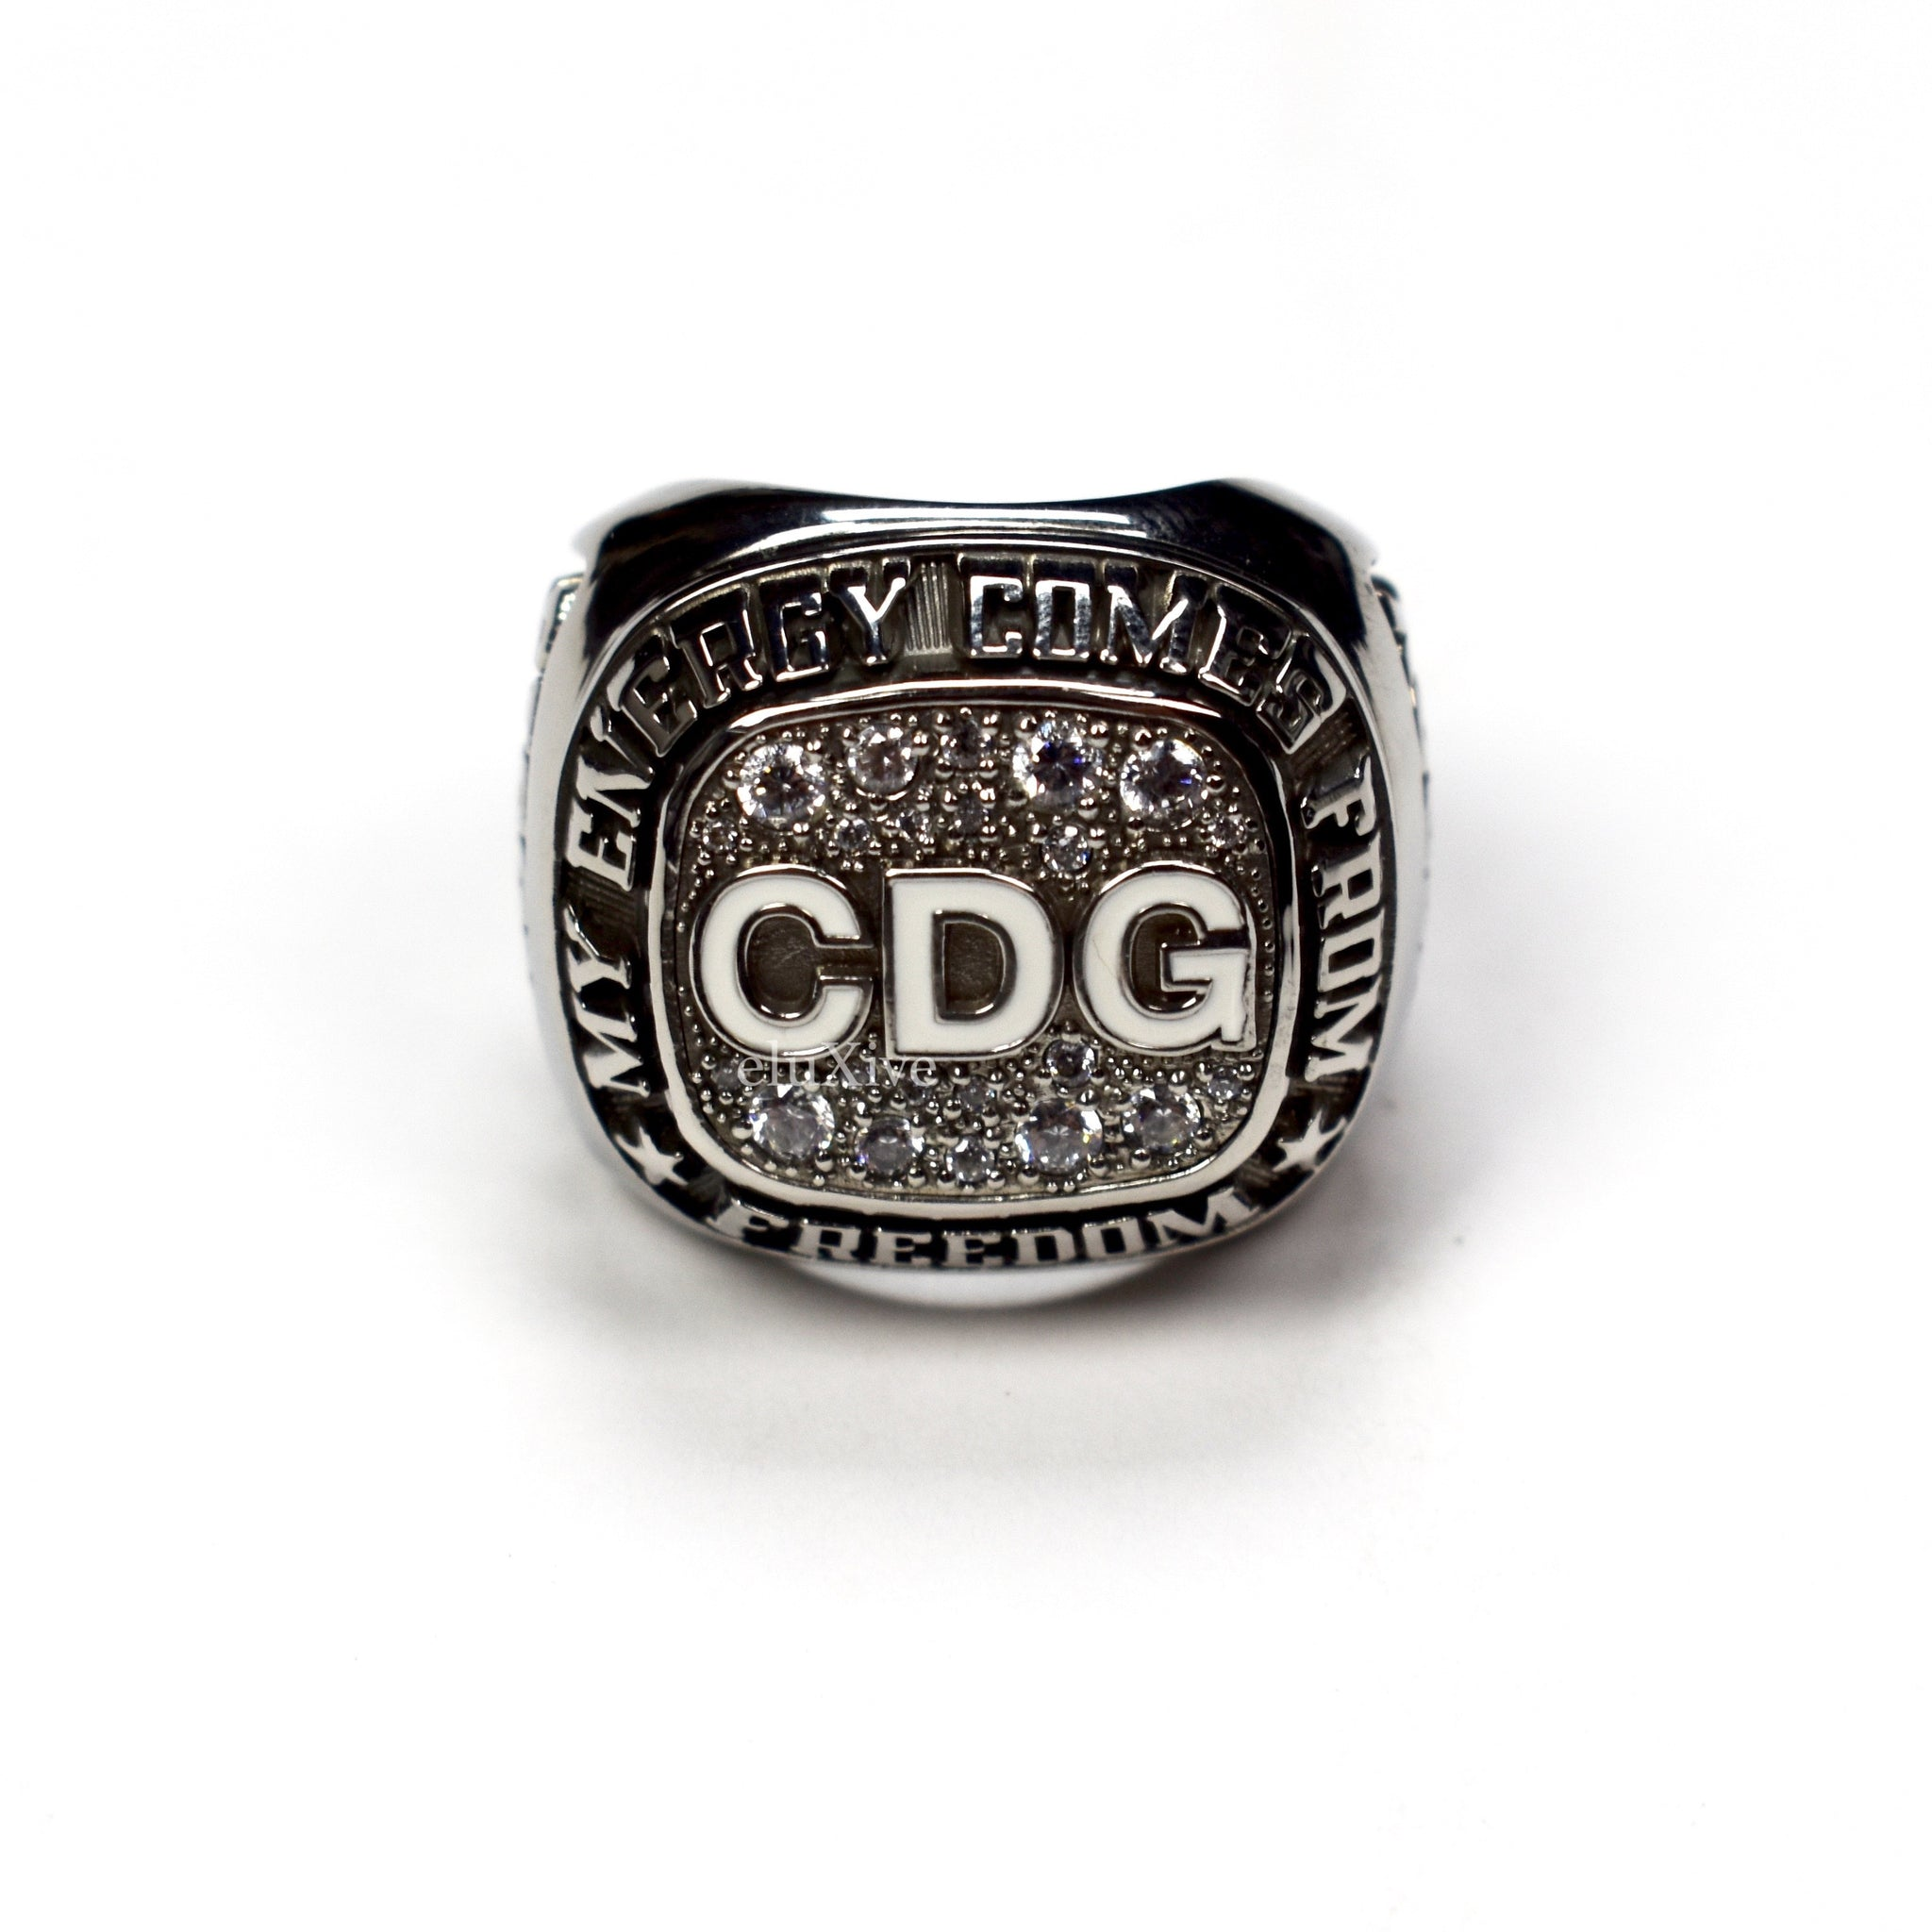 Comme Des Garcons - CDG Championship Crystal Ring